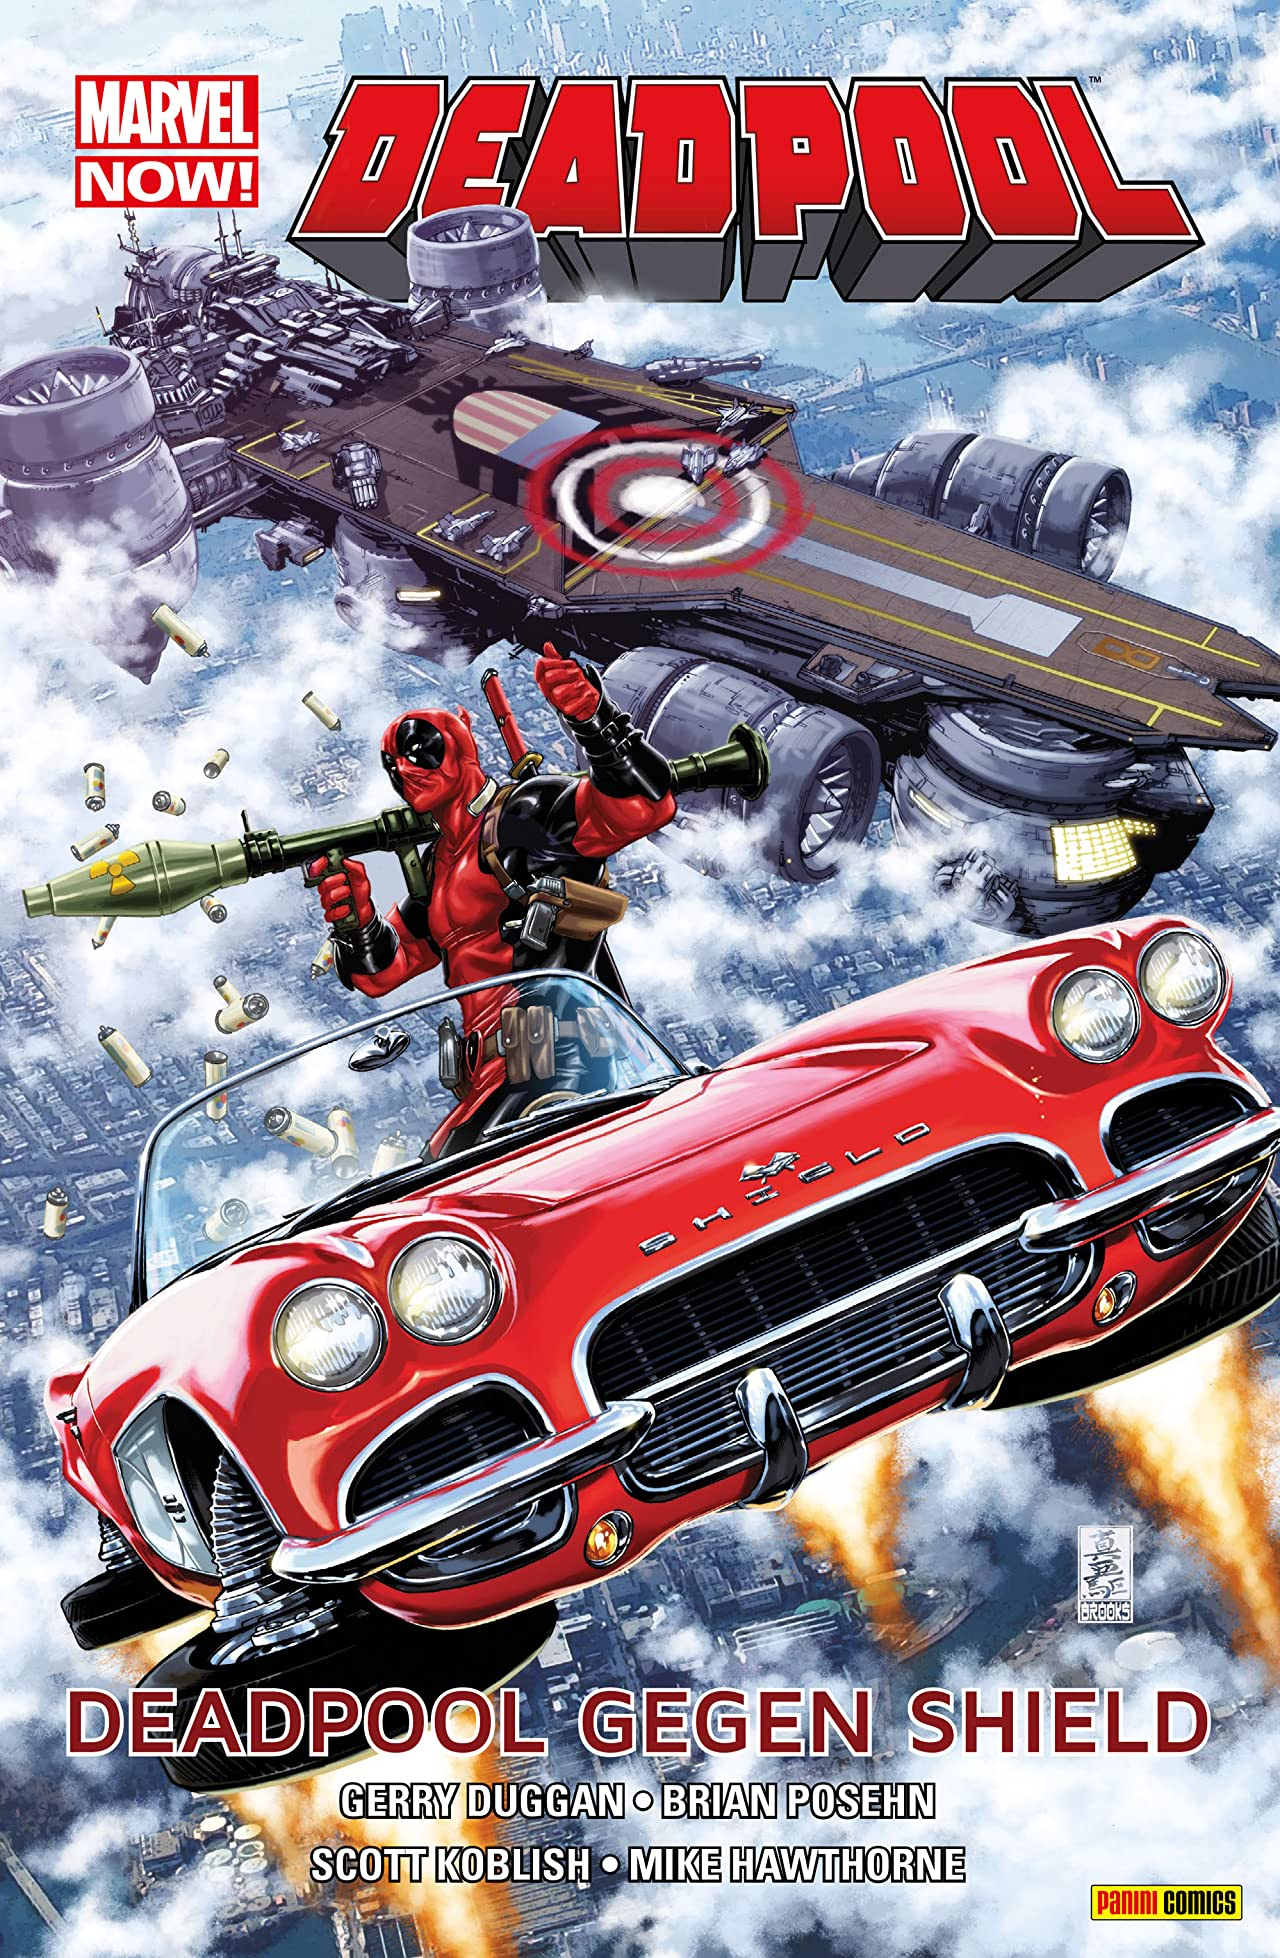 Marvel Now! PB Deadpool Vol. 4: Deadpool gegen Shield